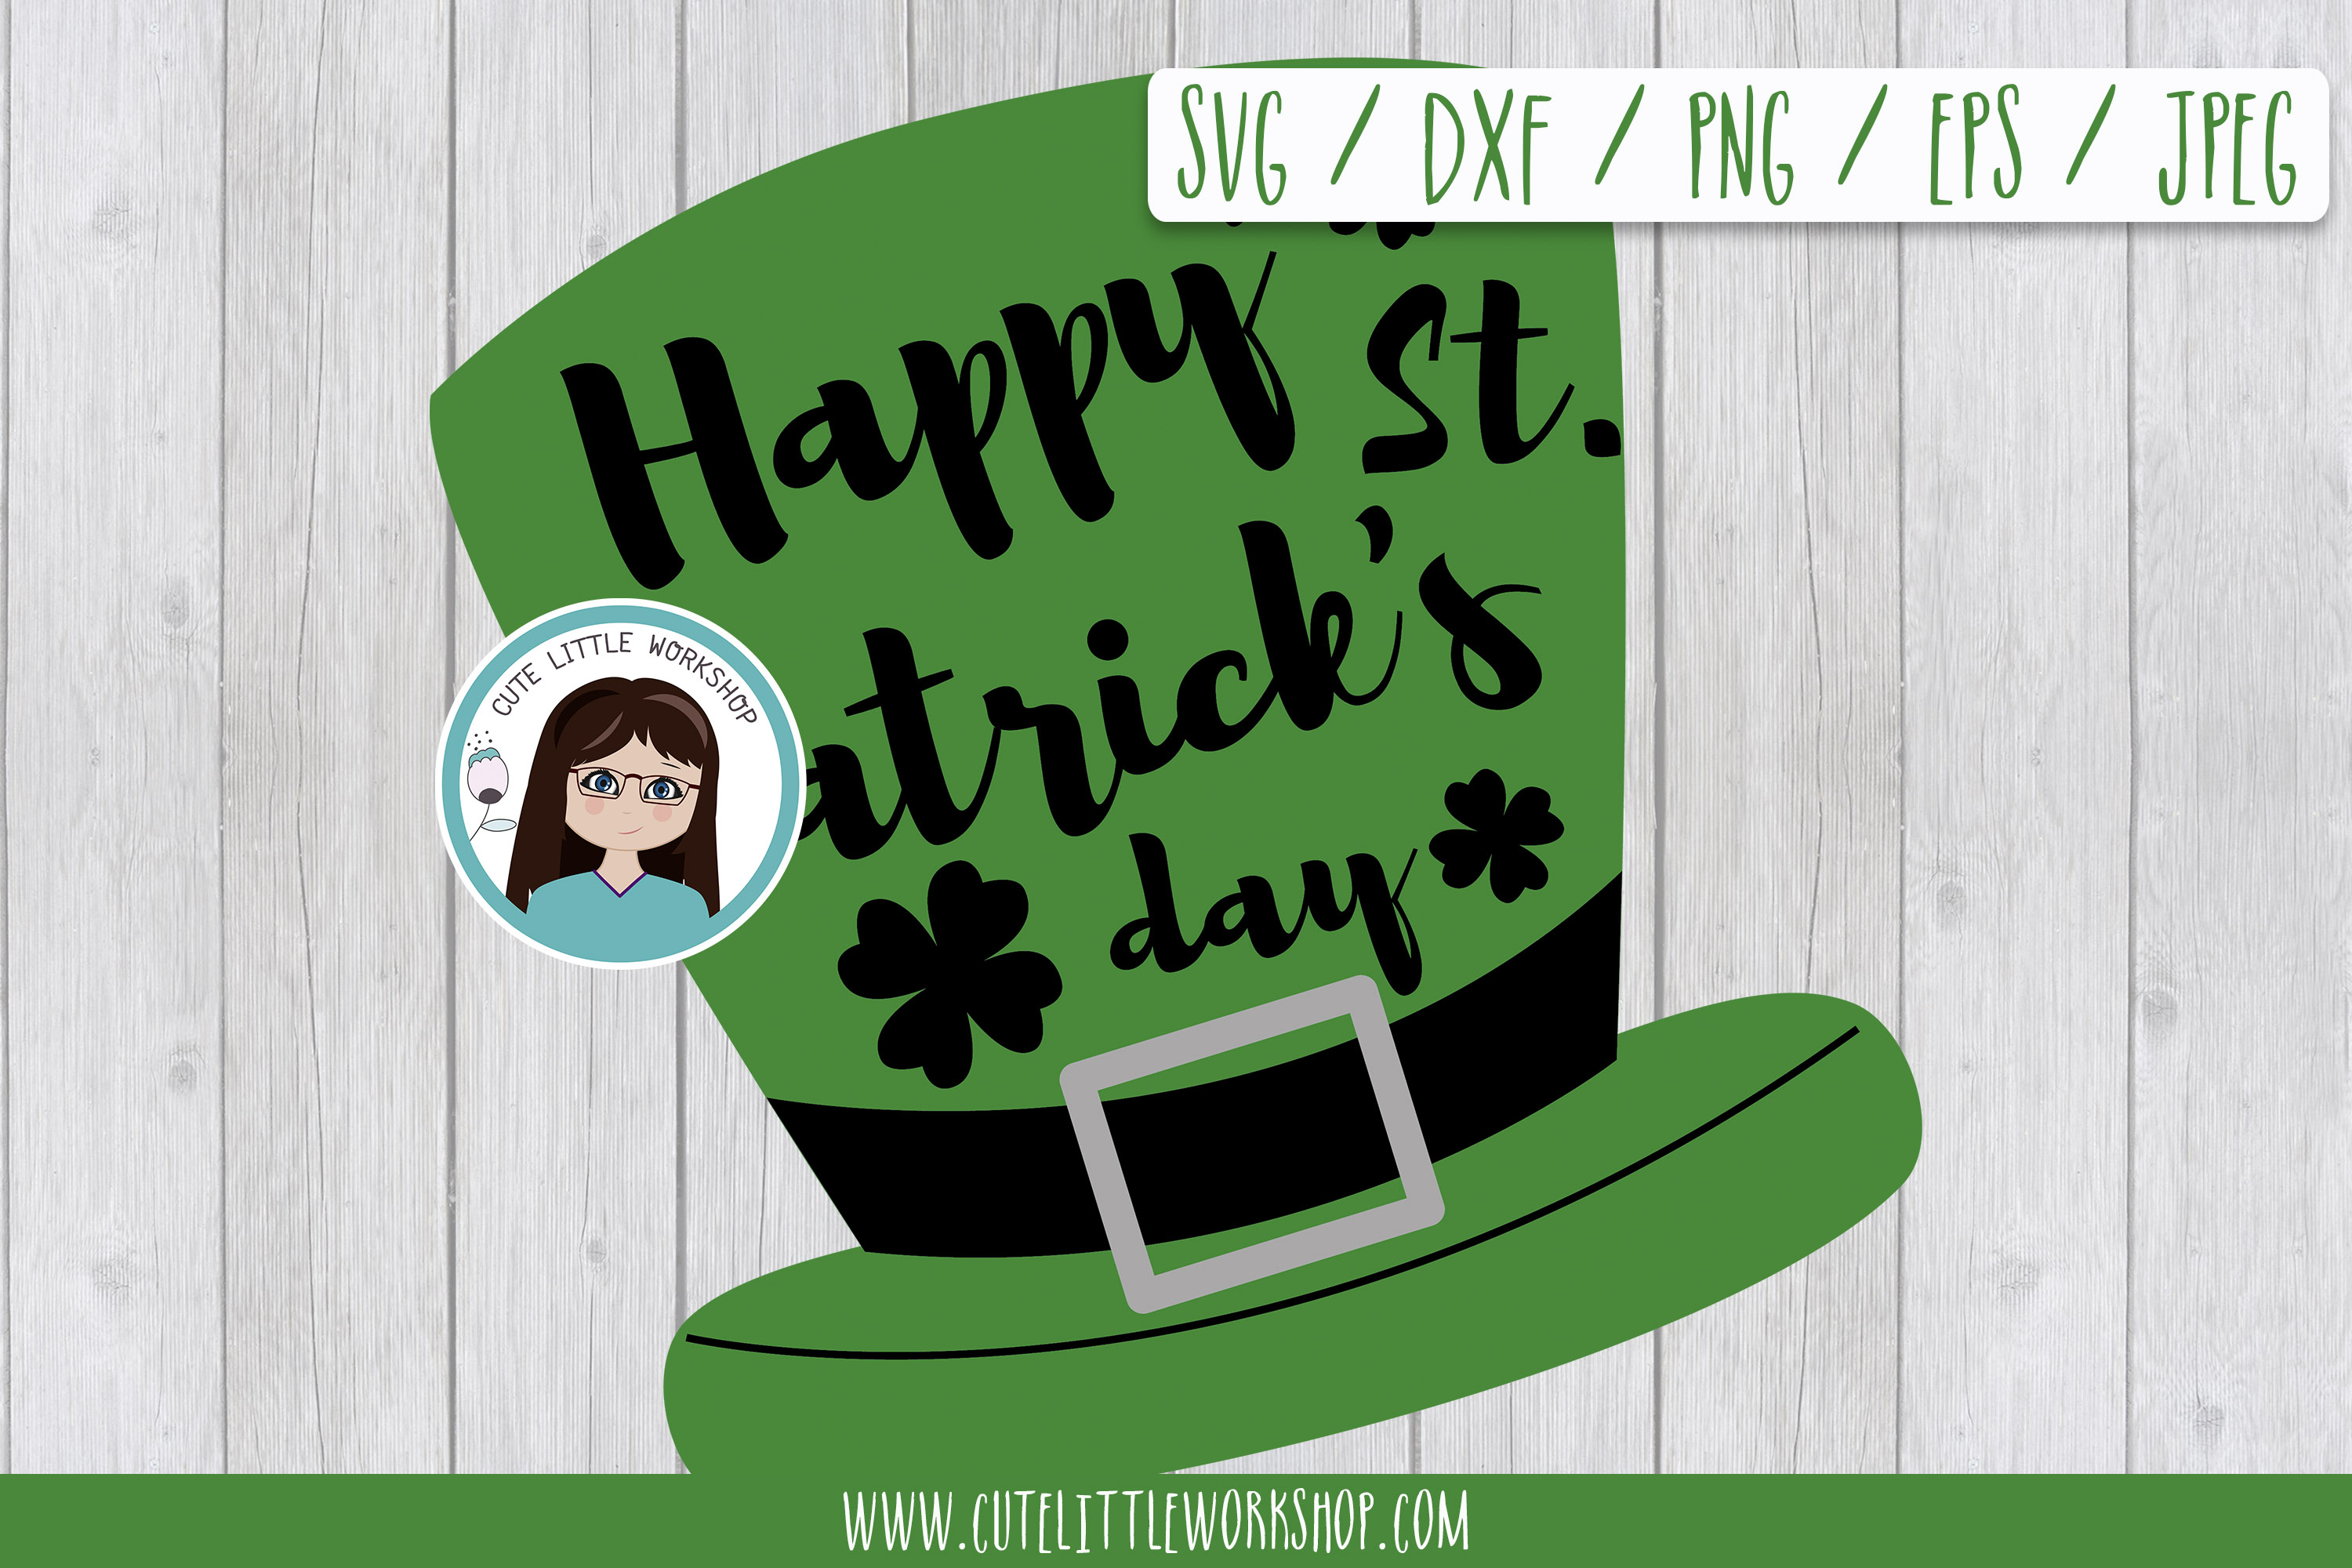 hsppy St. Patrick's daySt patrick's SVG DXF PNG JPEG EPS example image 1